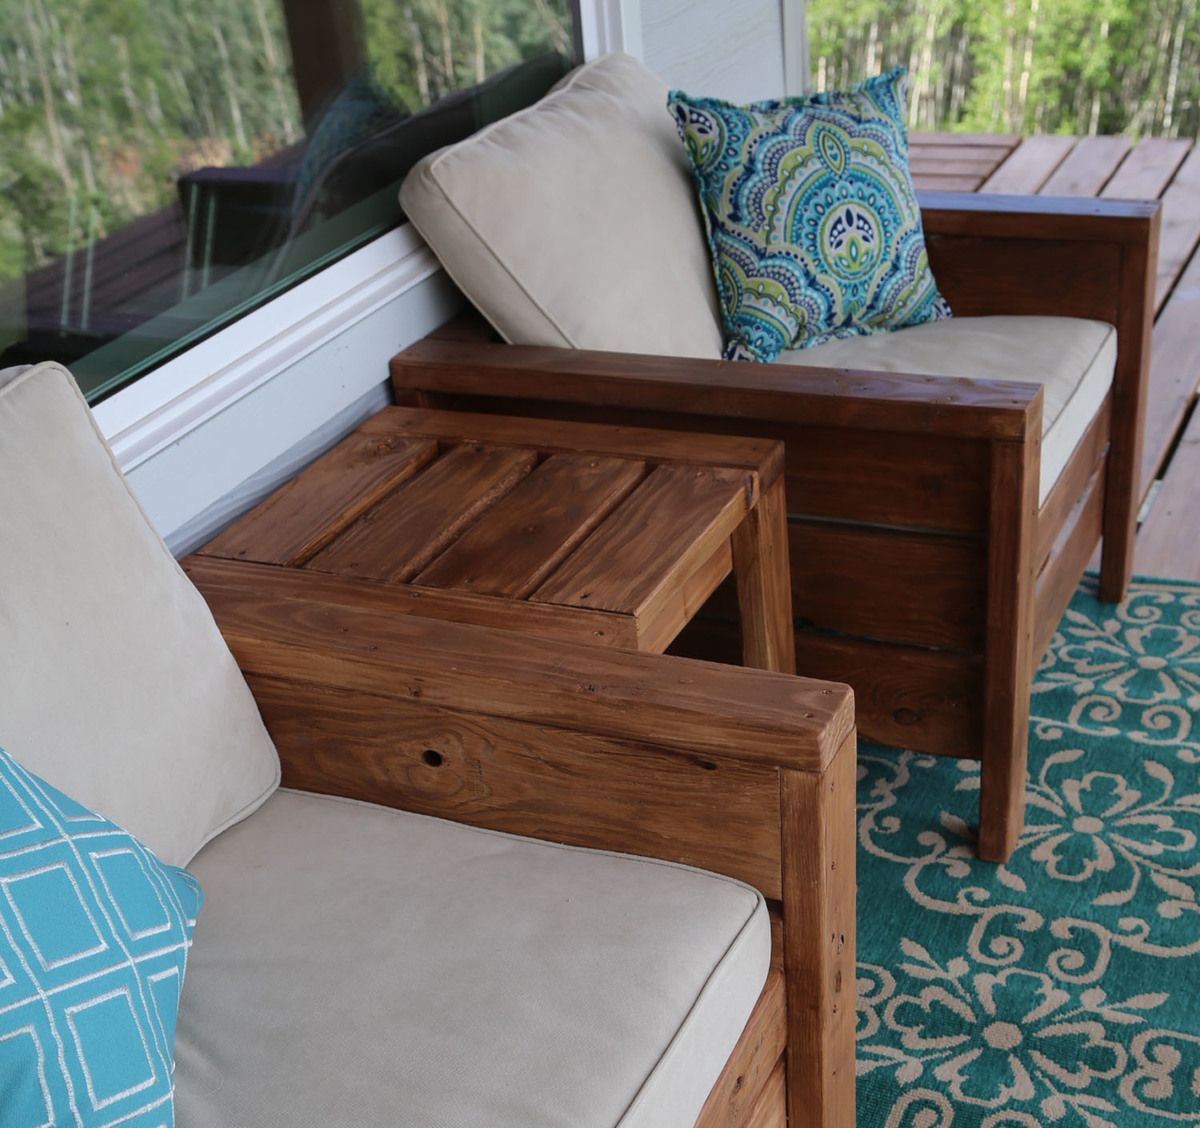 Modern Outdoor Chair from 2x4s and 2x6s Wood patio